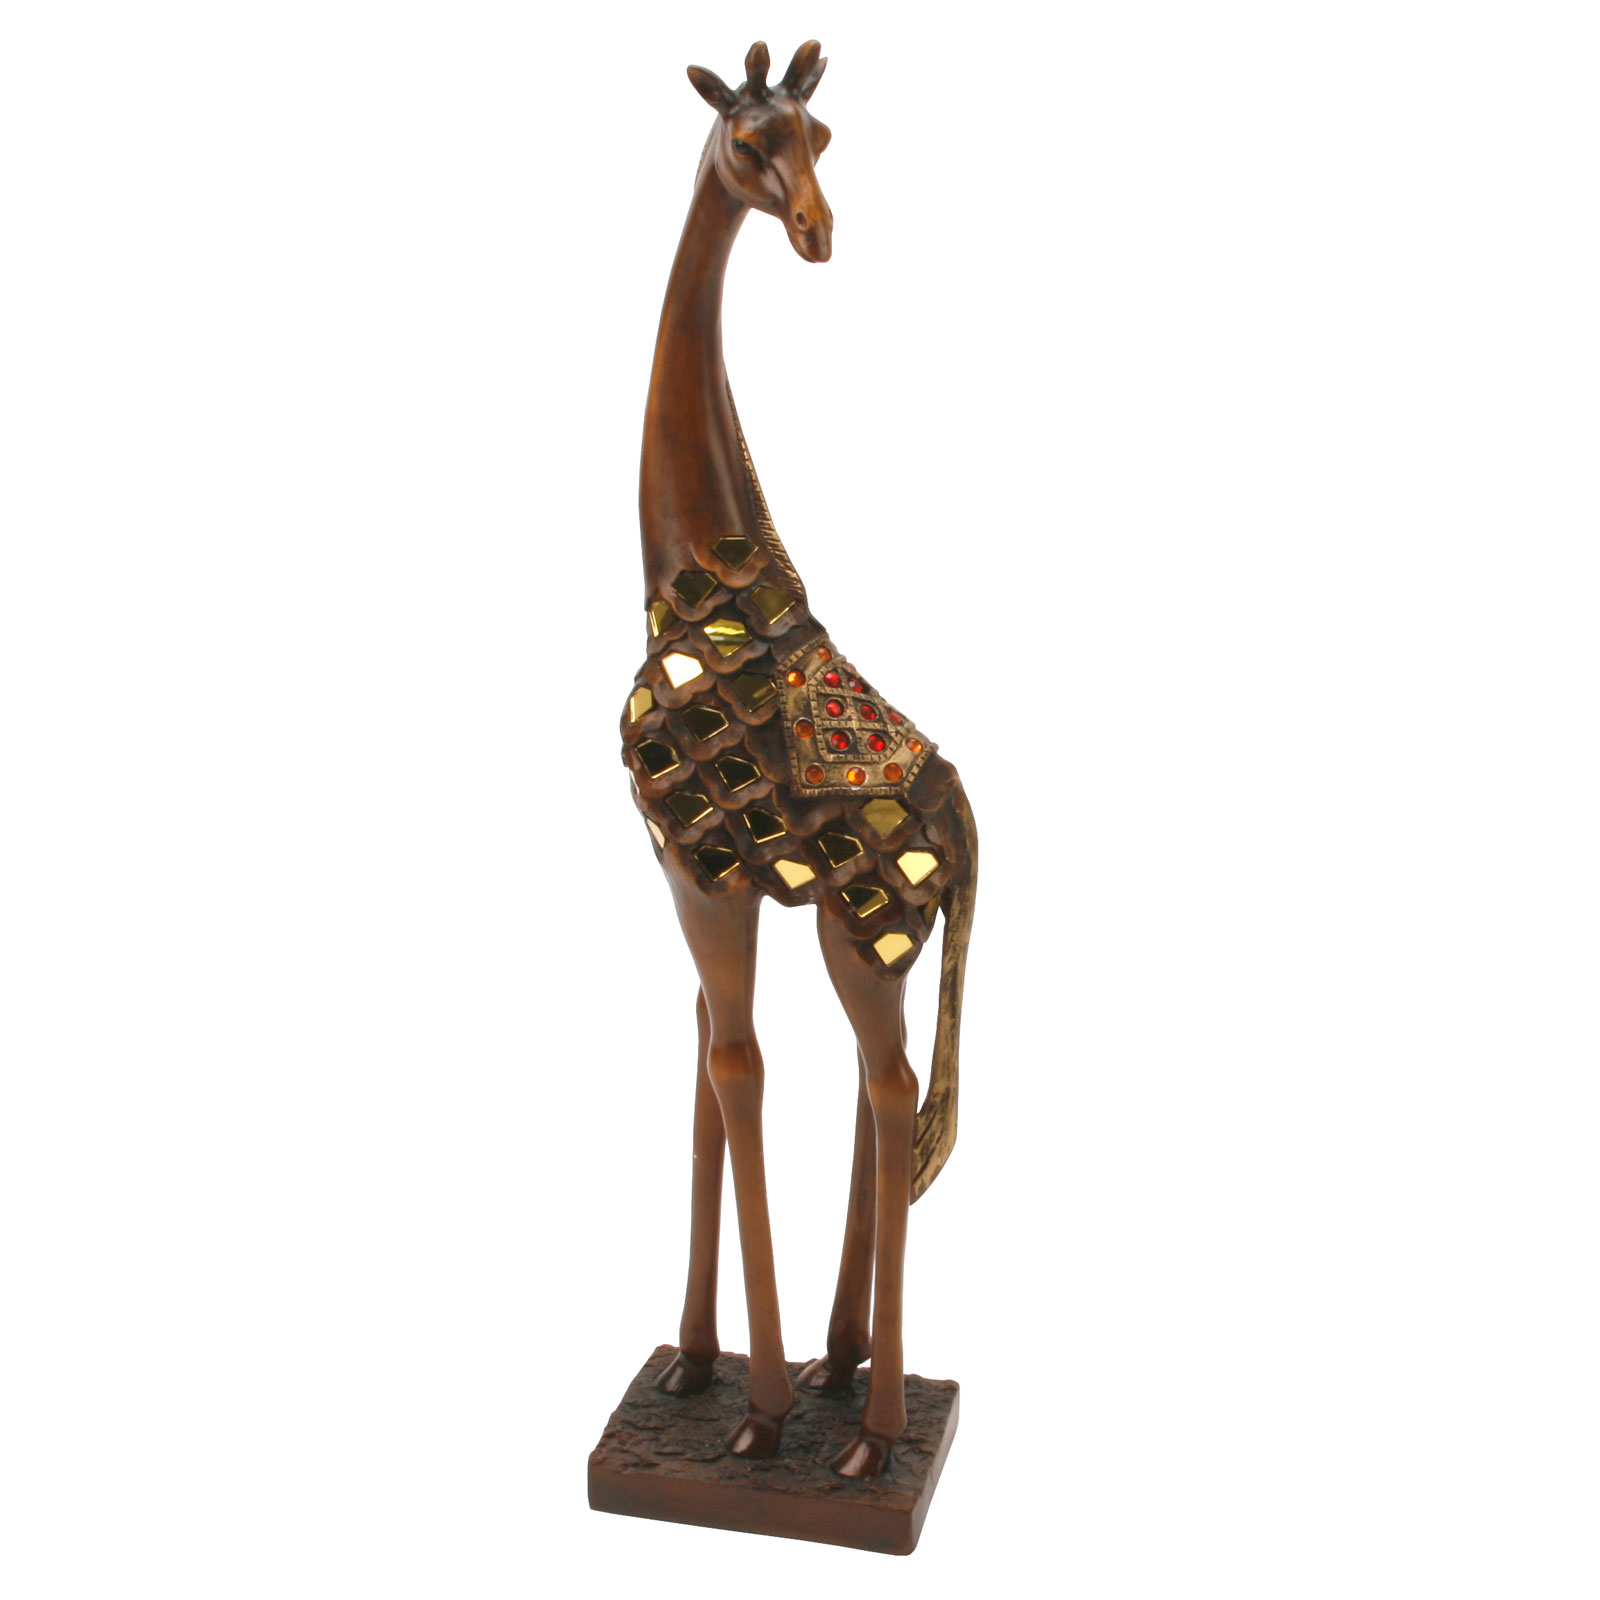 Realistic Large Wooden Effect Giraffe Standing 46cm Gift